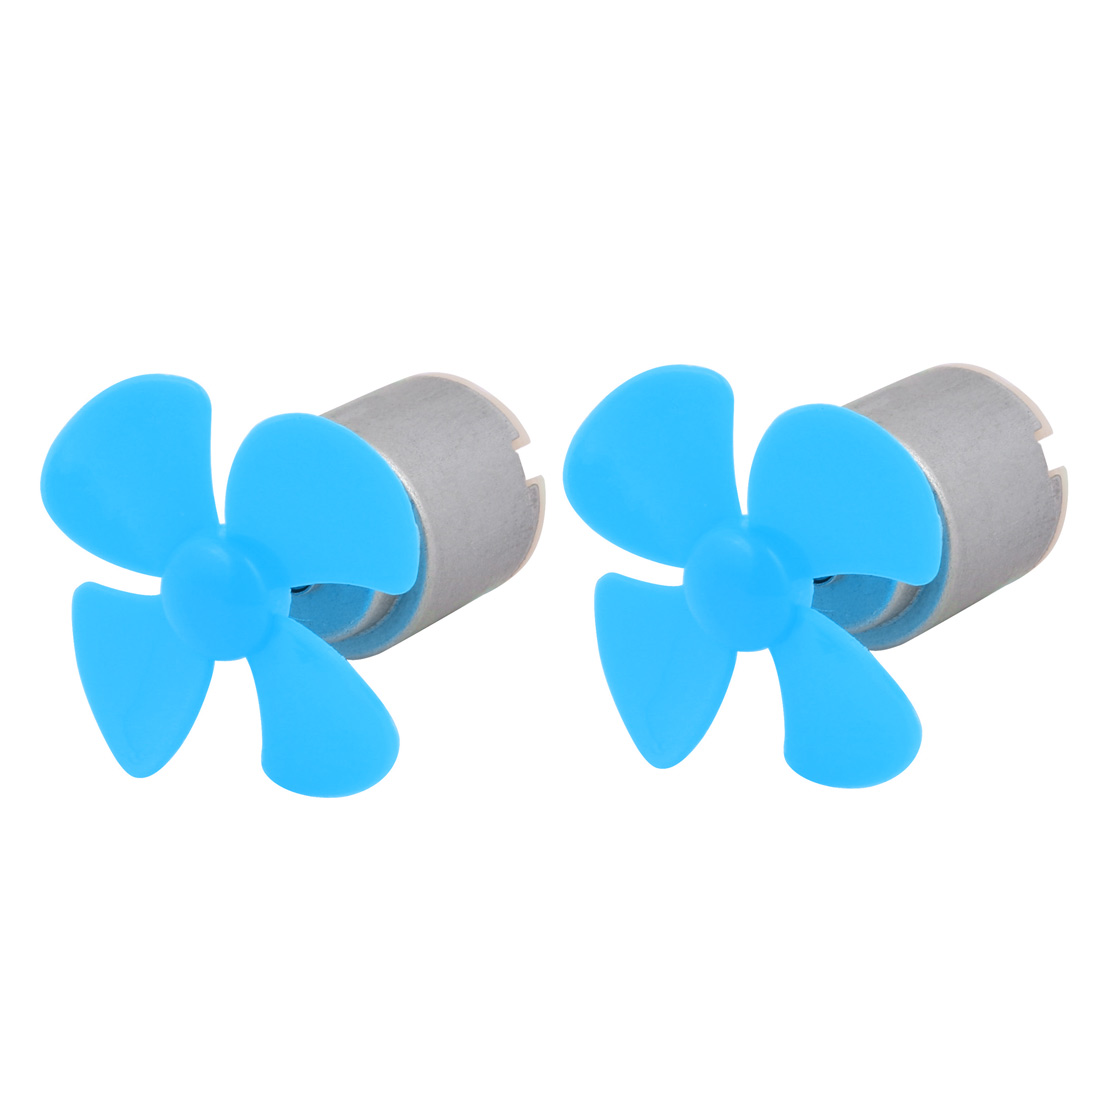 2Pcs DC 3V 0.13A 6600RPM Large Torque Motor 4-Vane 40mm Dia Propeller Blue for RC Model